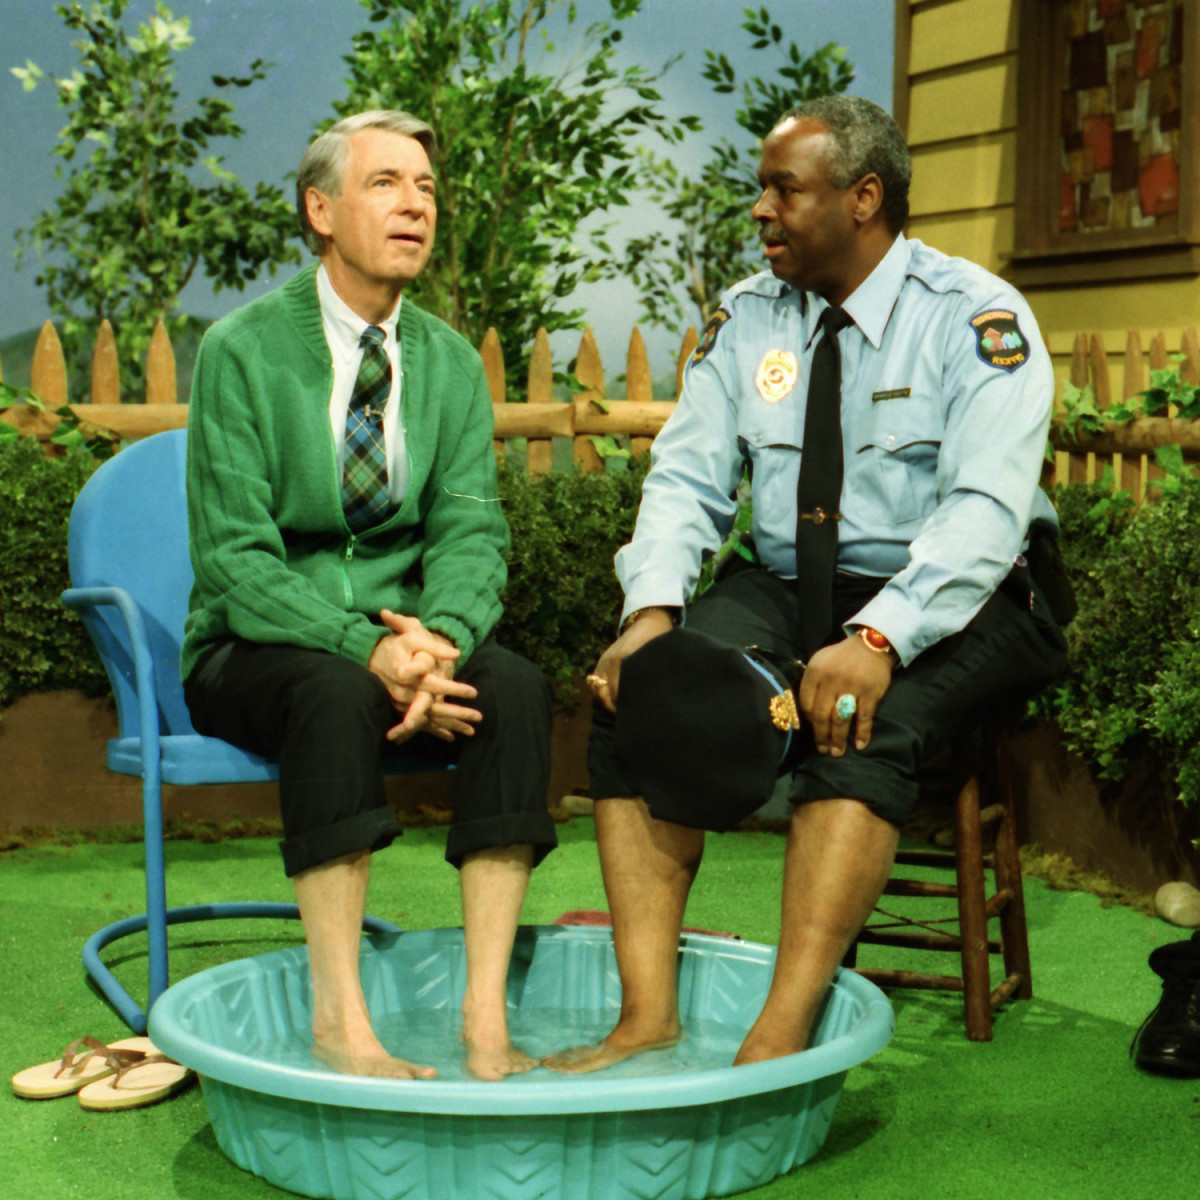 Fred Rogers and Francois Scarborough Clemmons in Won't You Be My Neighbor?